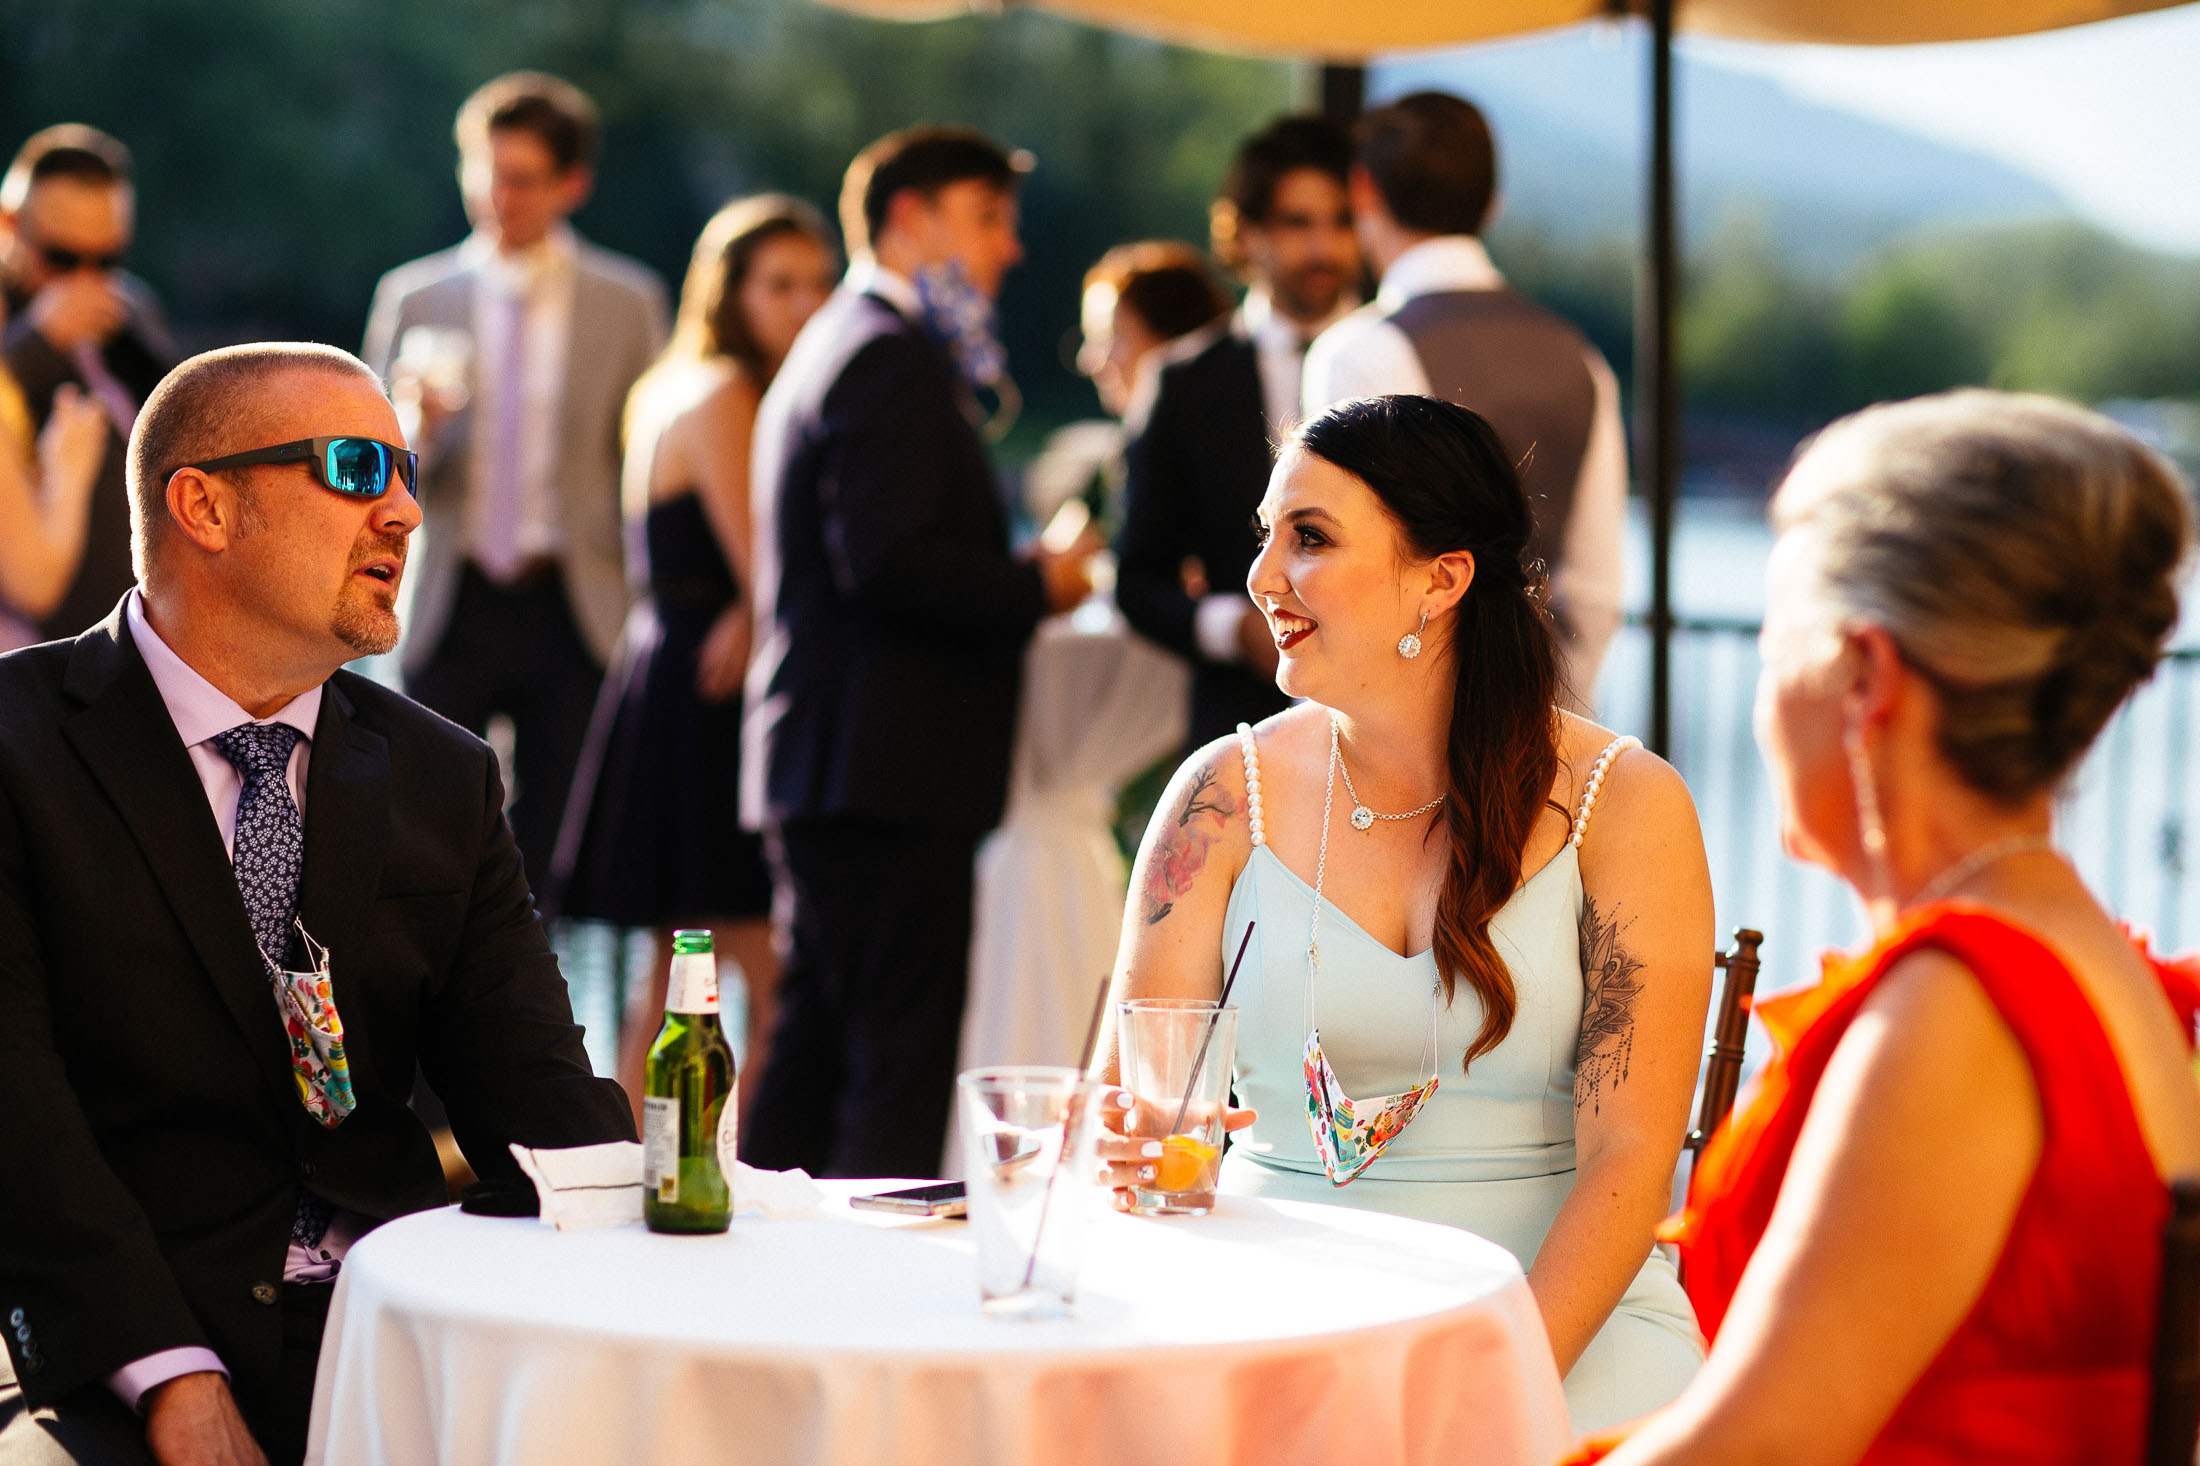 Guests on the patio at the South Tower during wedding reception.